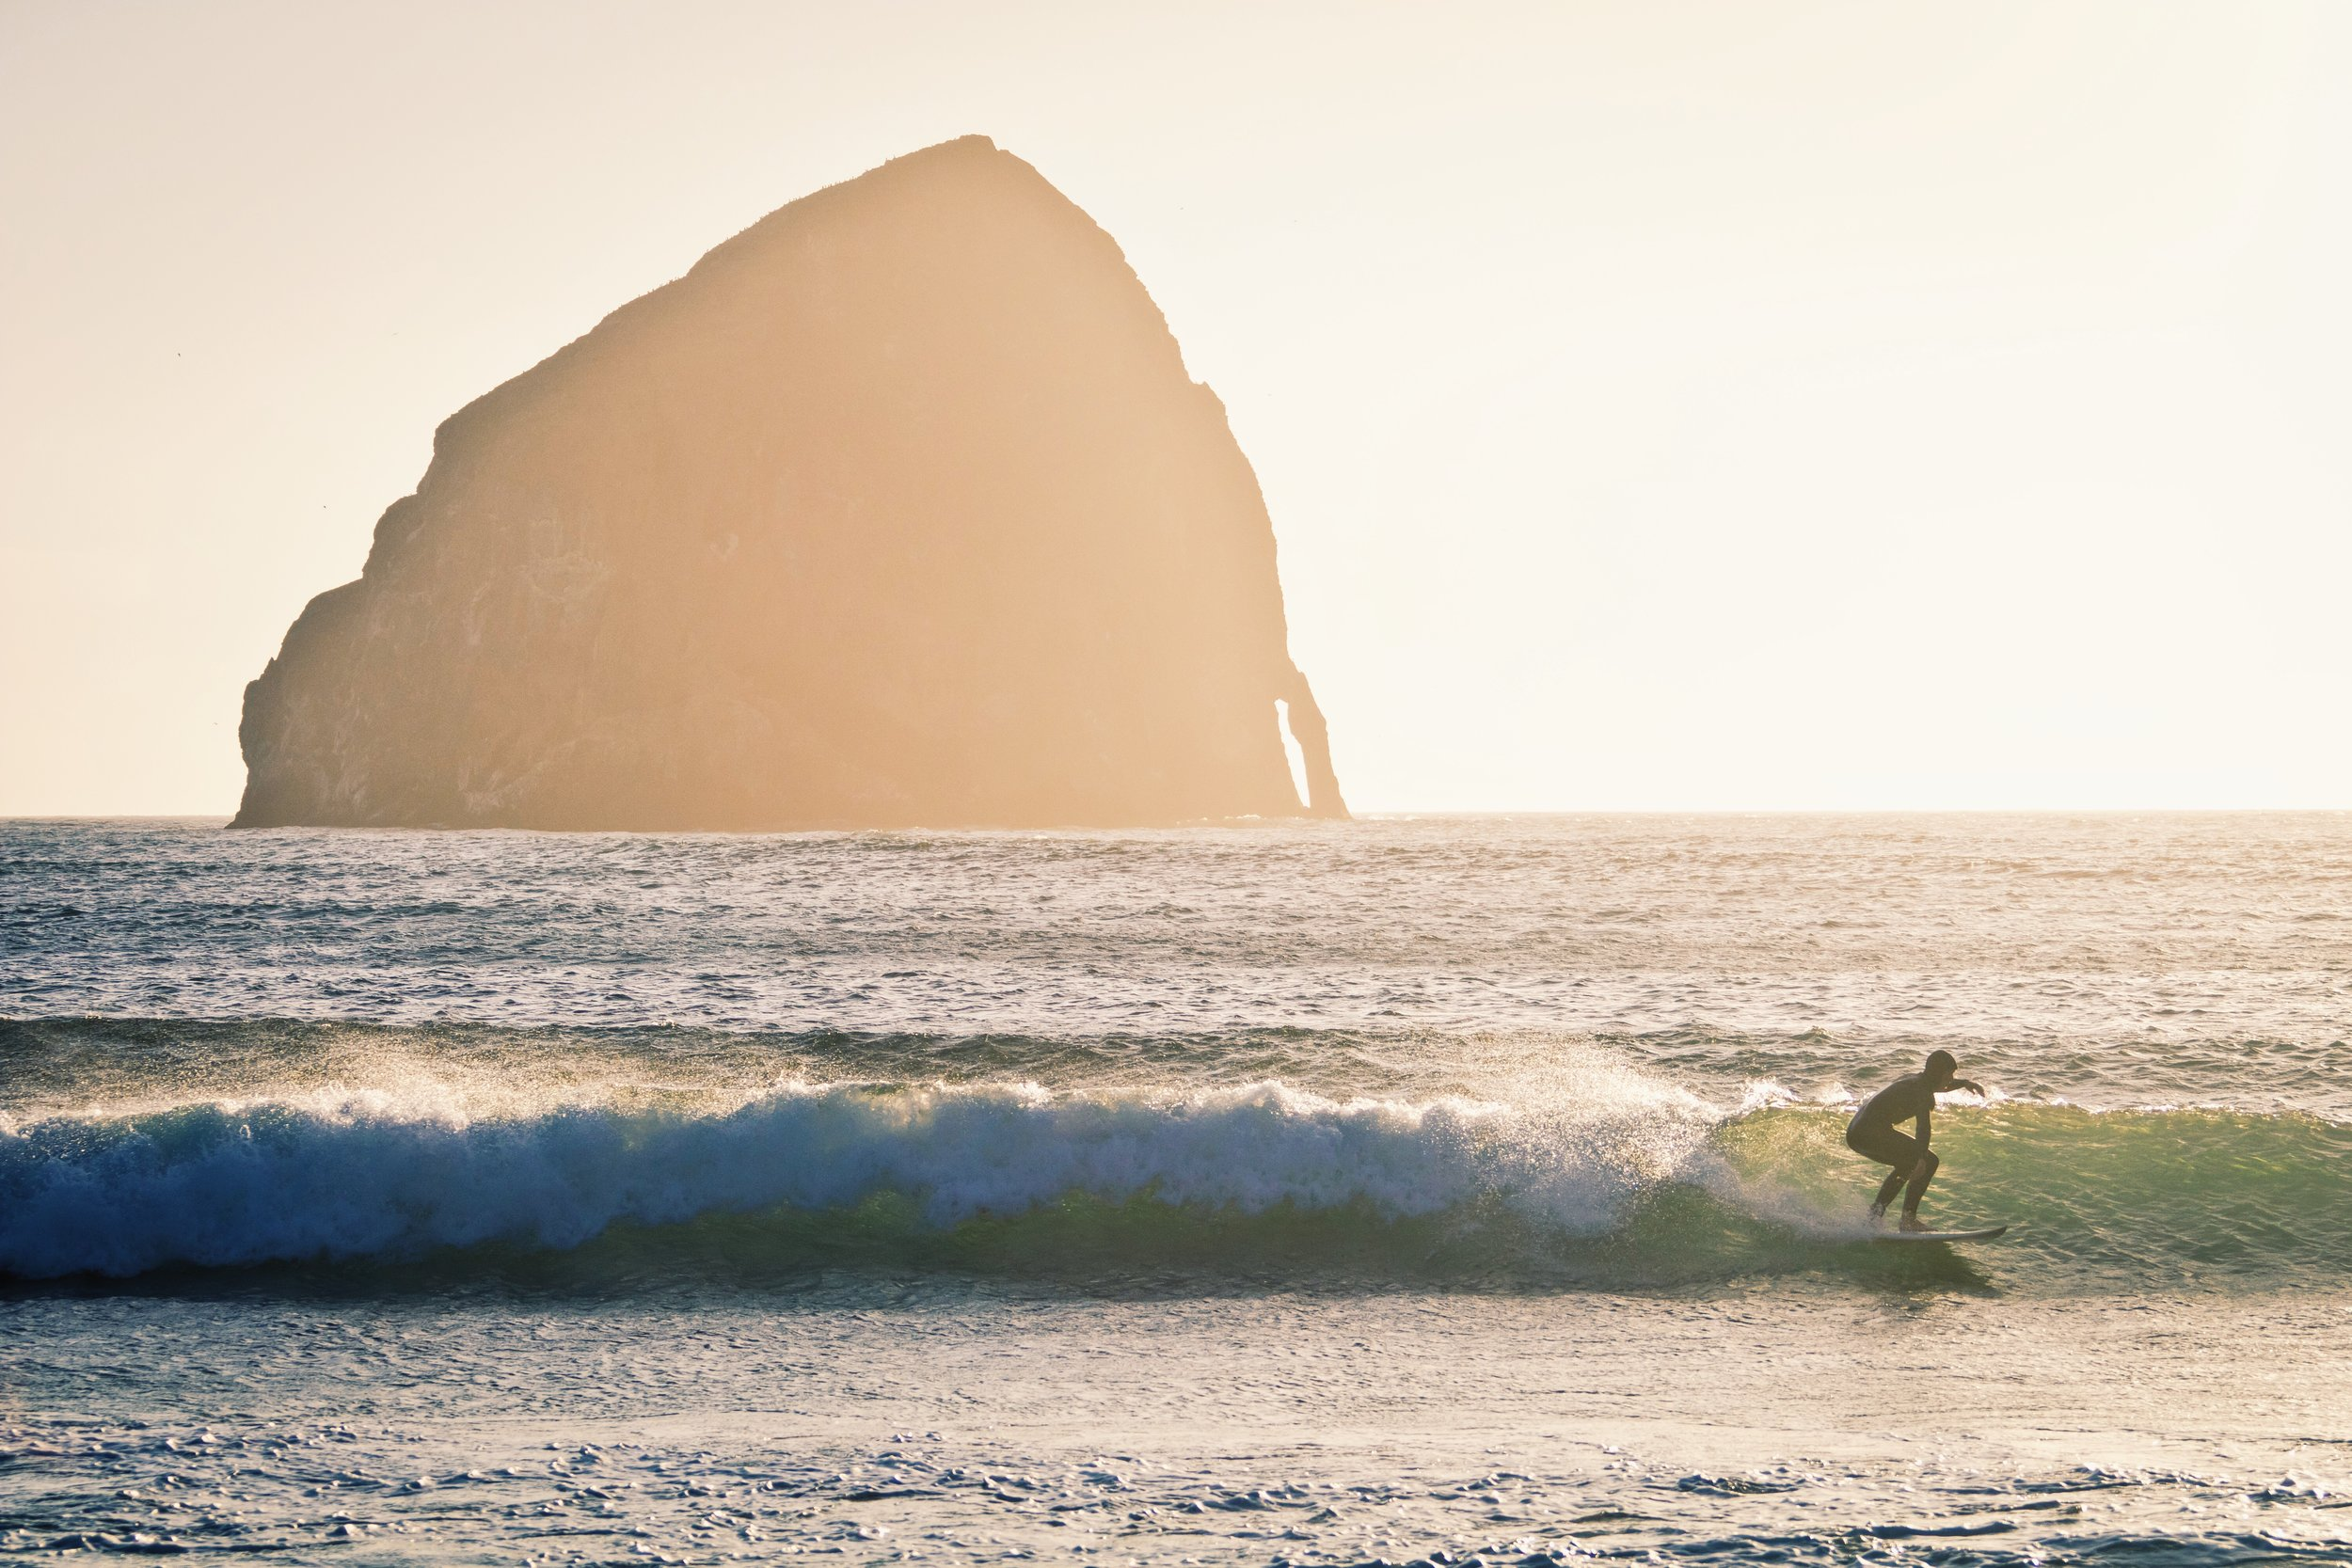 Surfing at Cape Kiwanda - Oregon